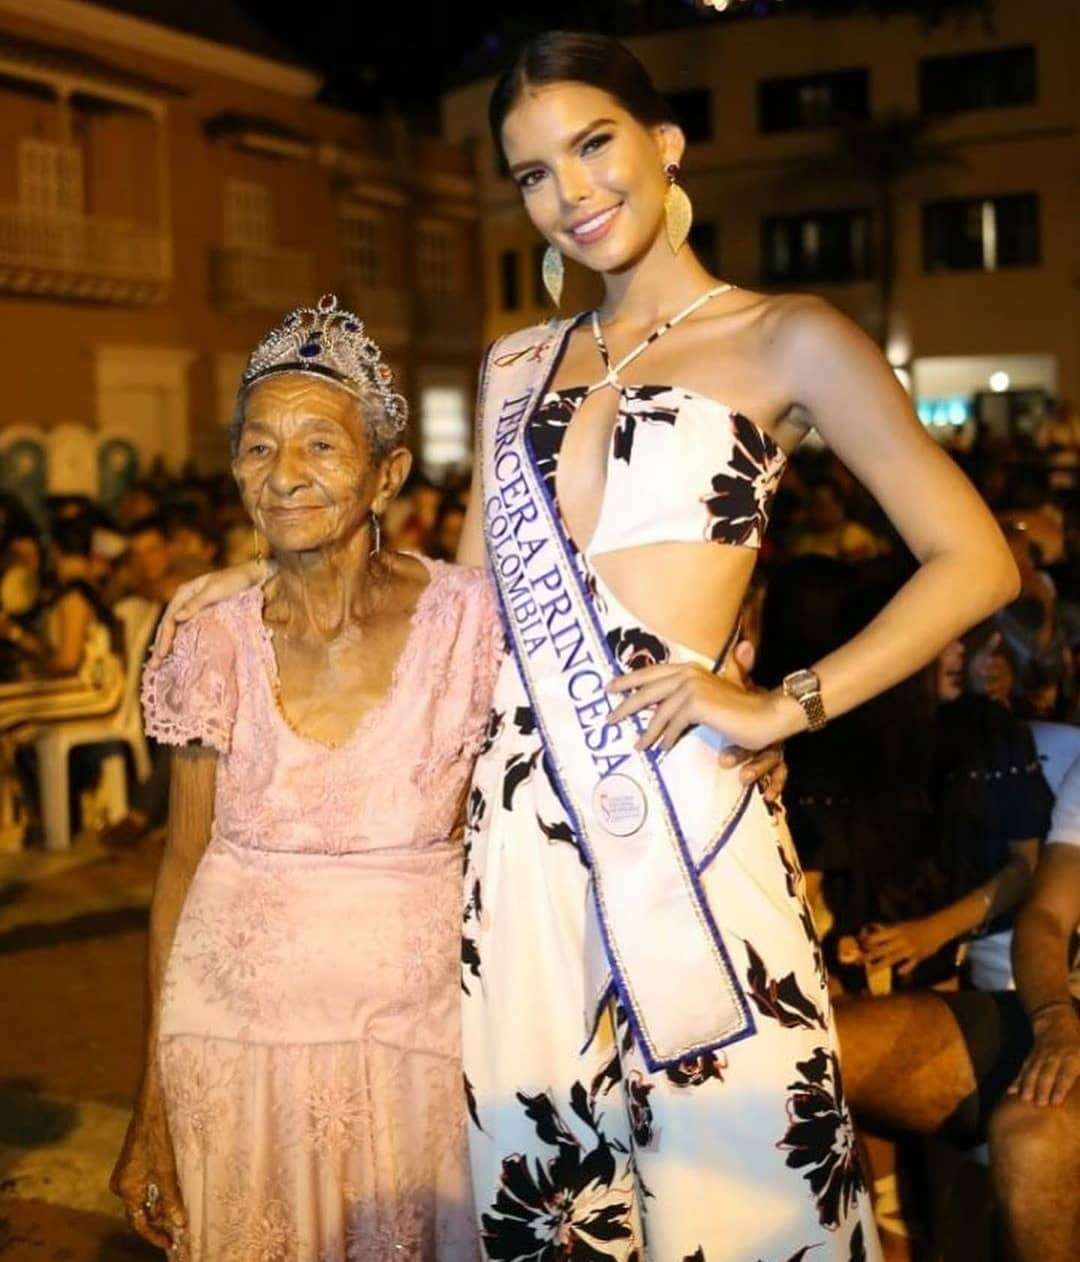 yaiselle tous, miss supranational colombia 2019. 60409810